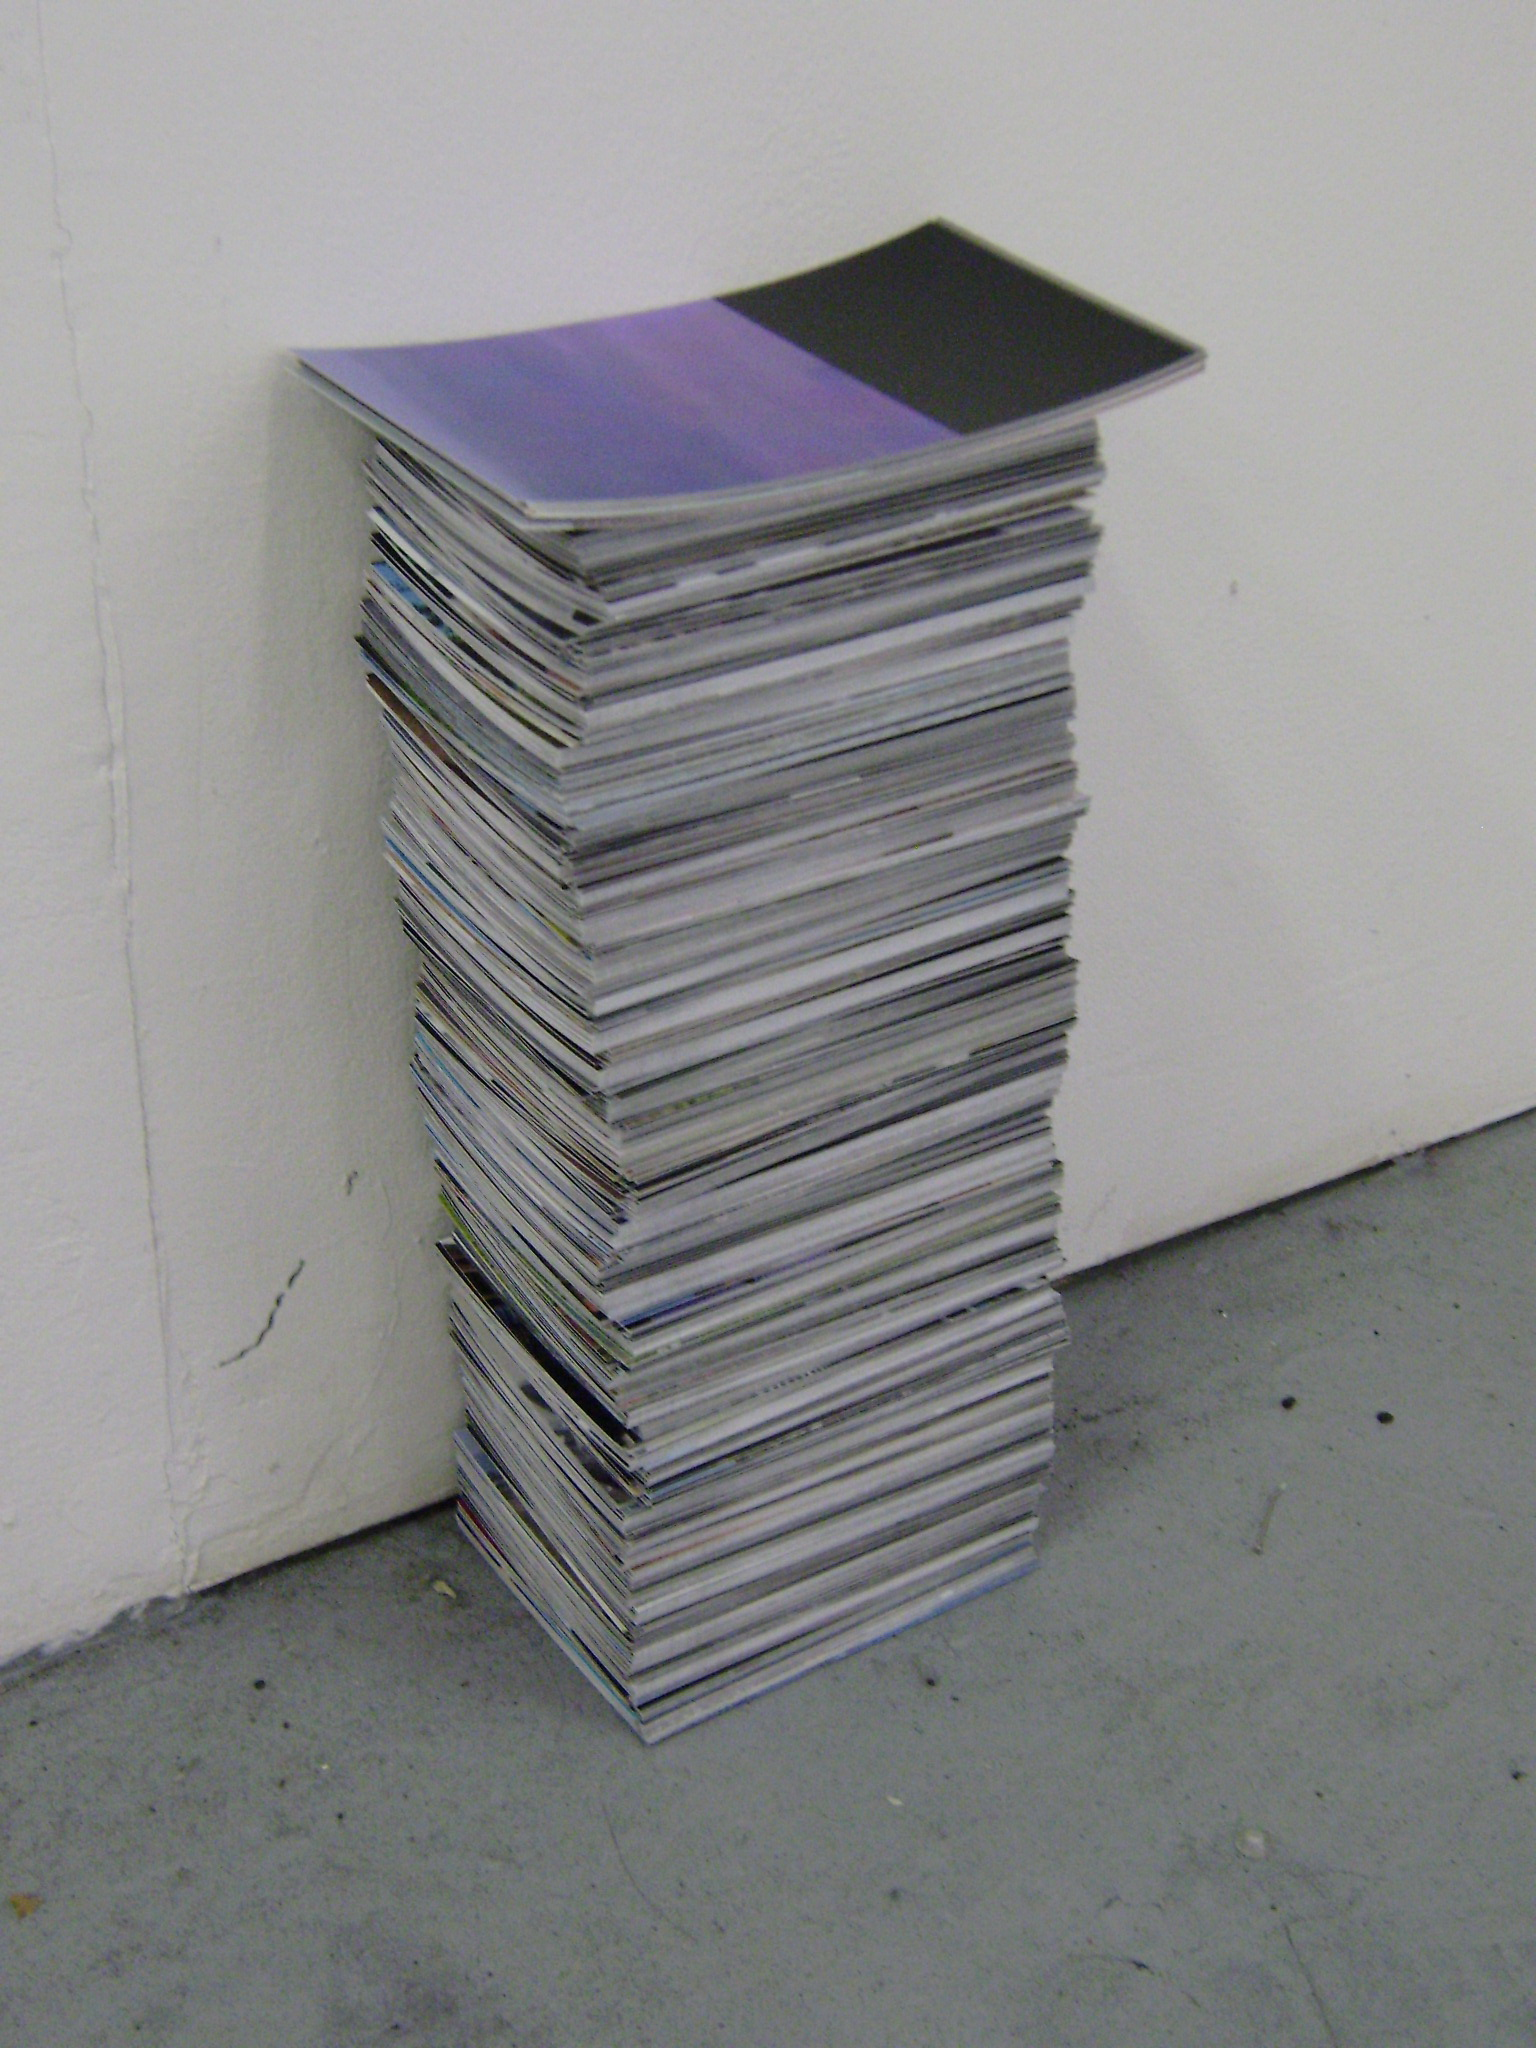 Image of a stack of printed video stills